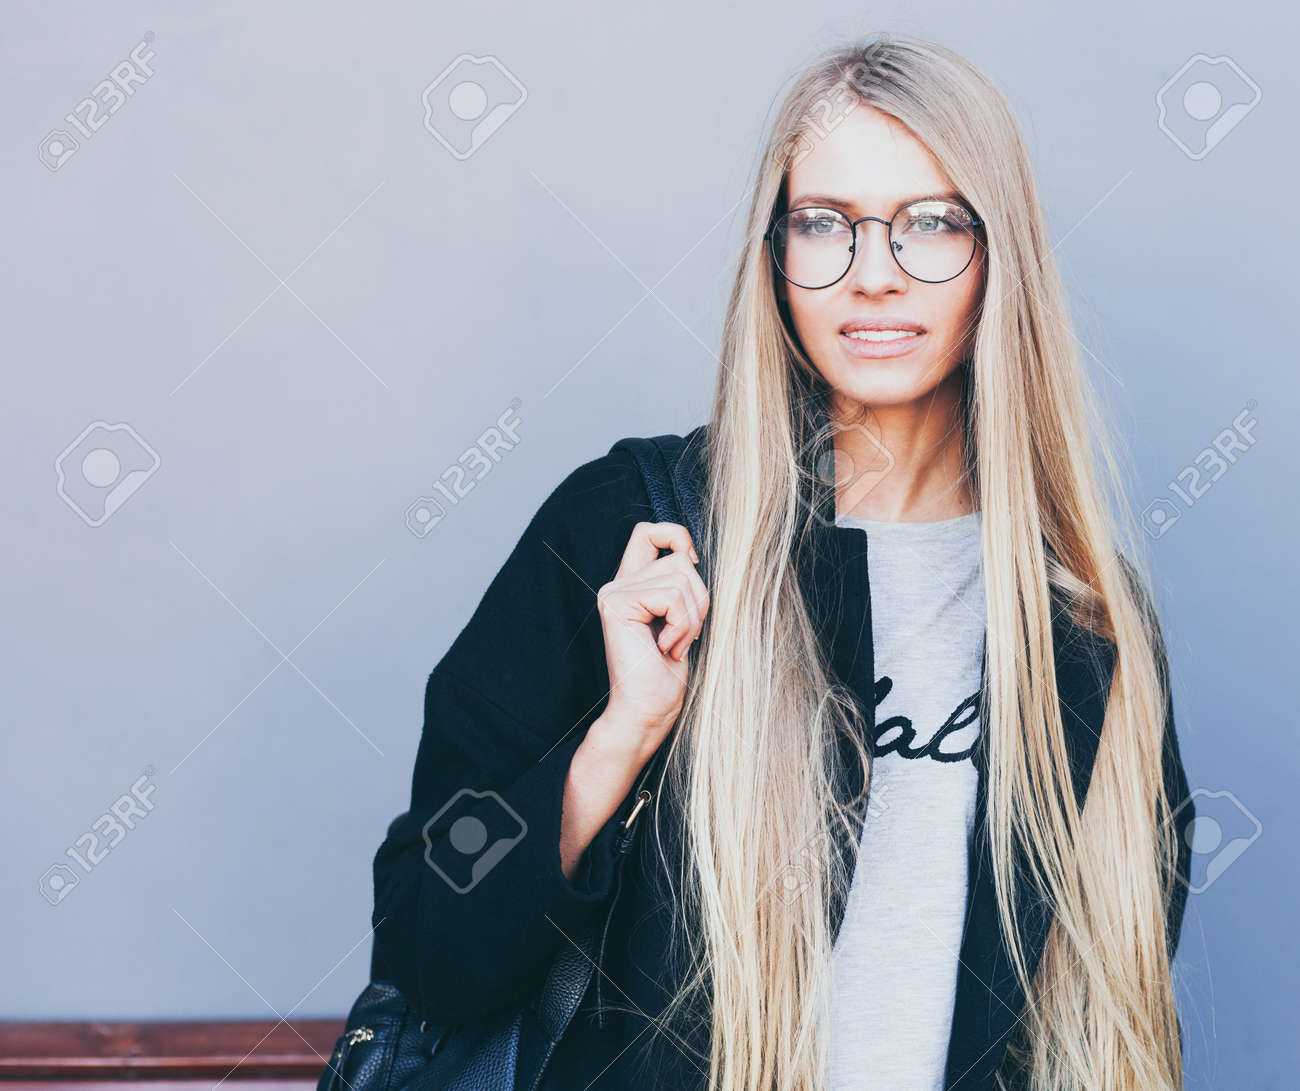 Closeup Portrait Of Blonde Girl With Long Haircut Hipster Insagram